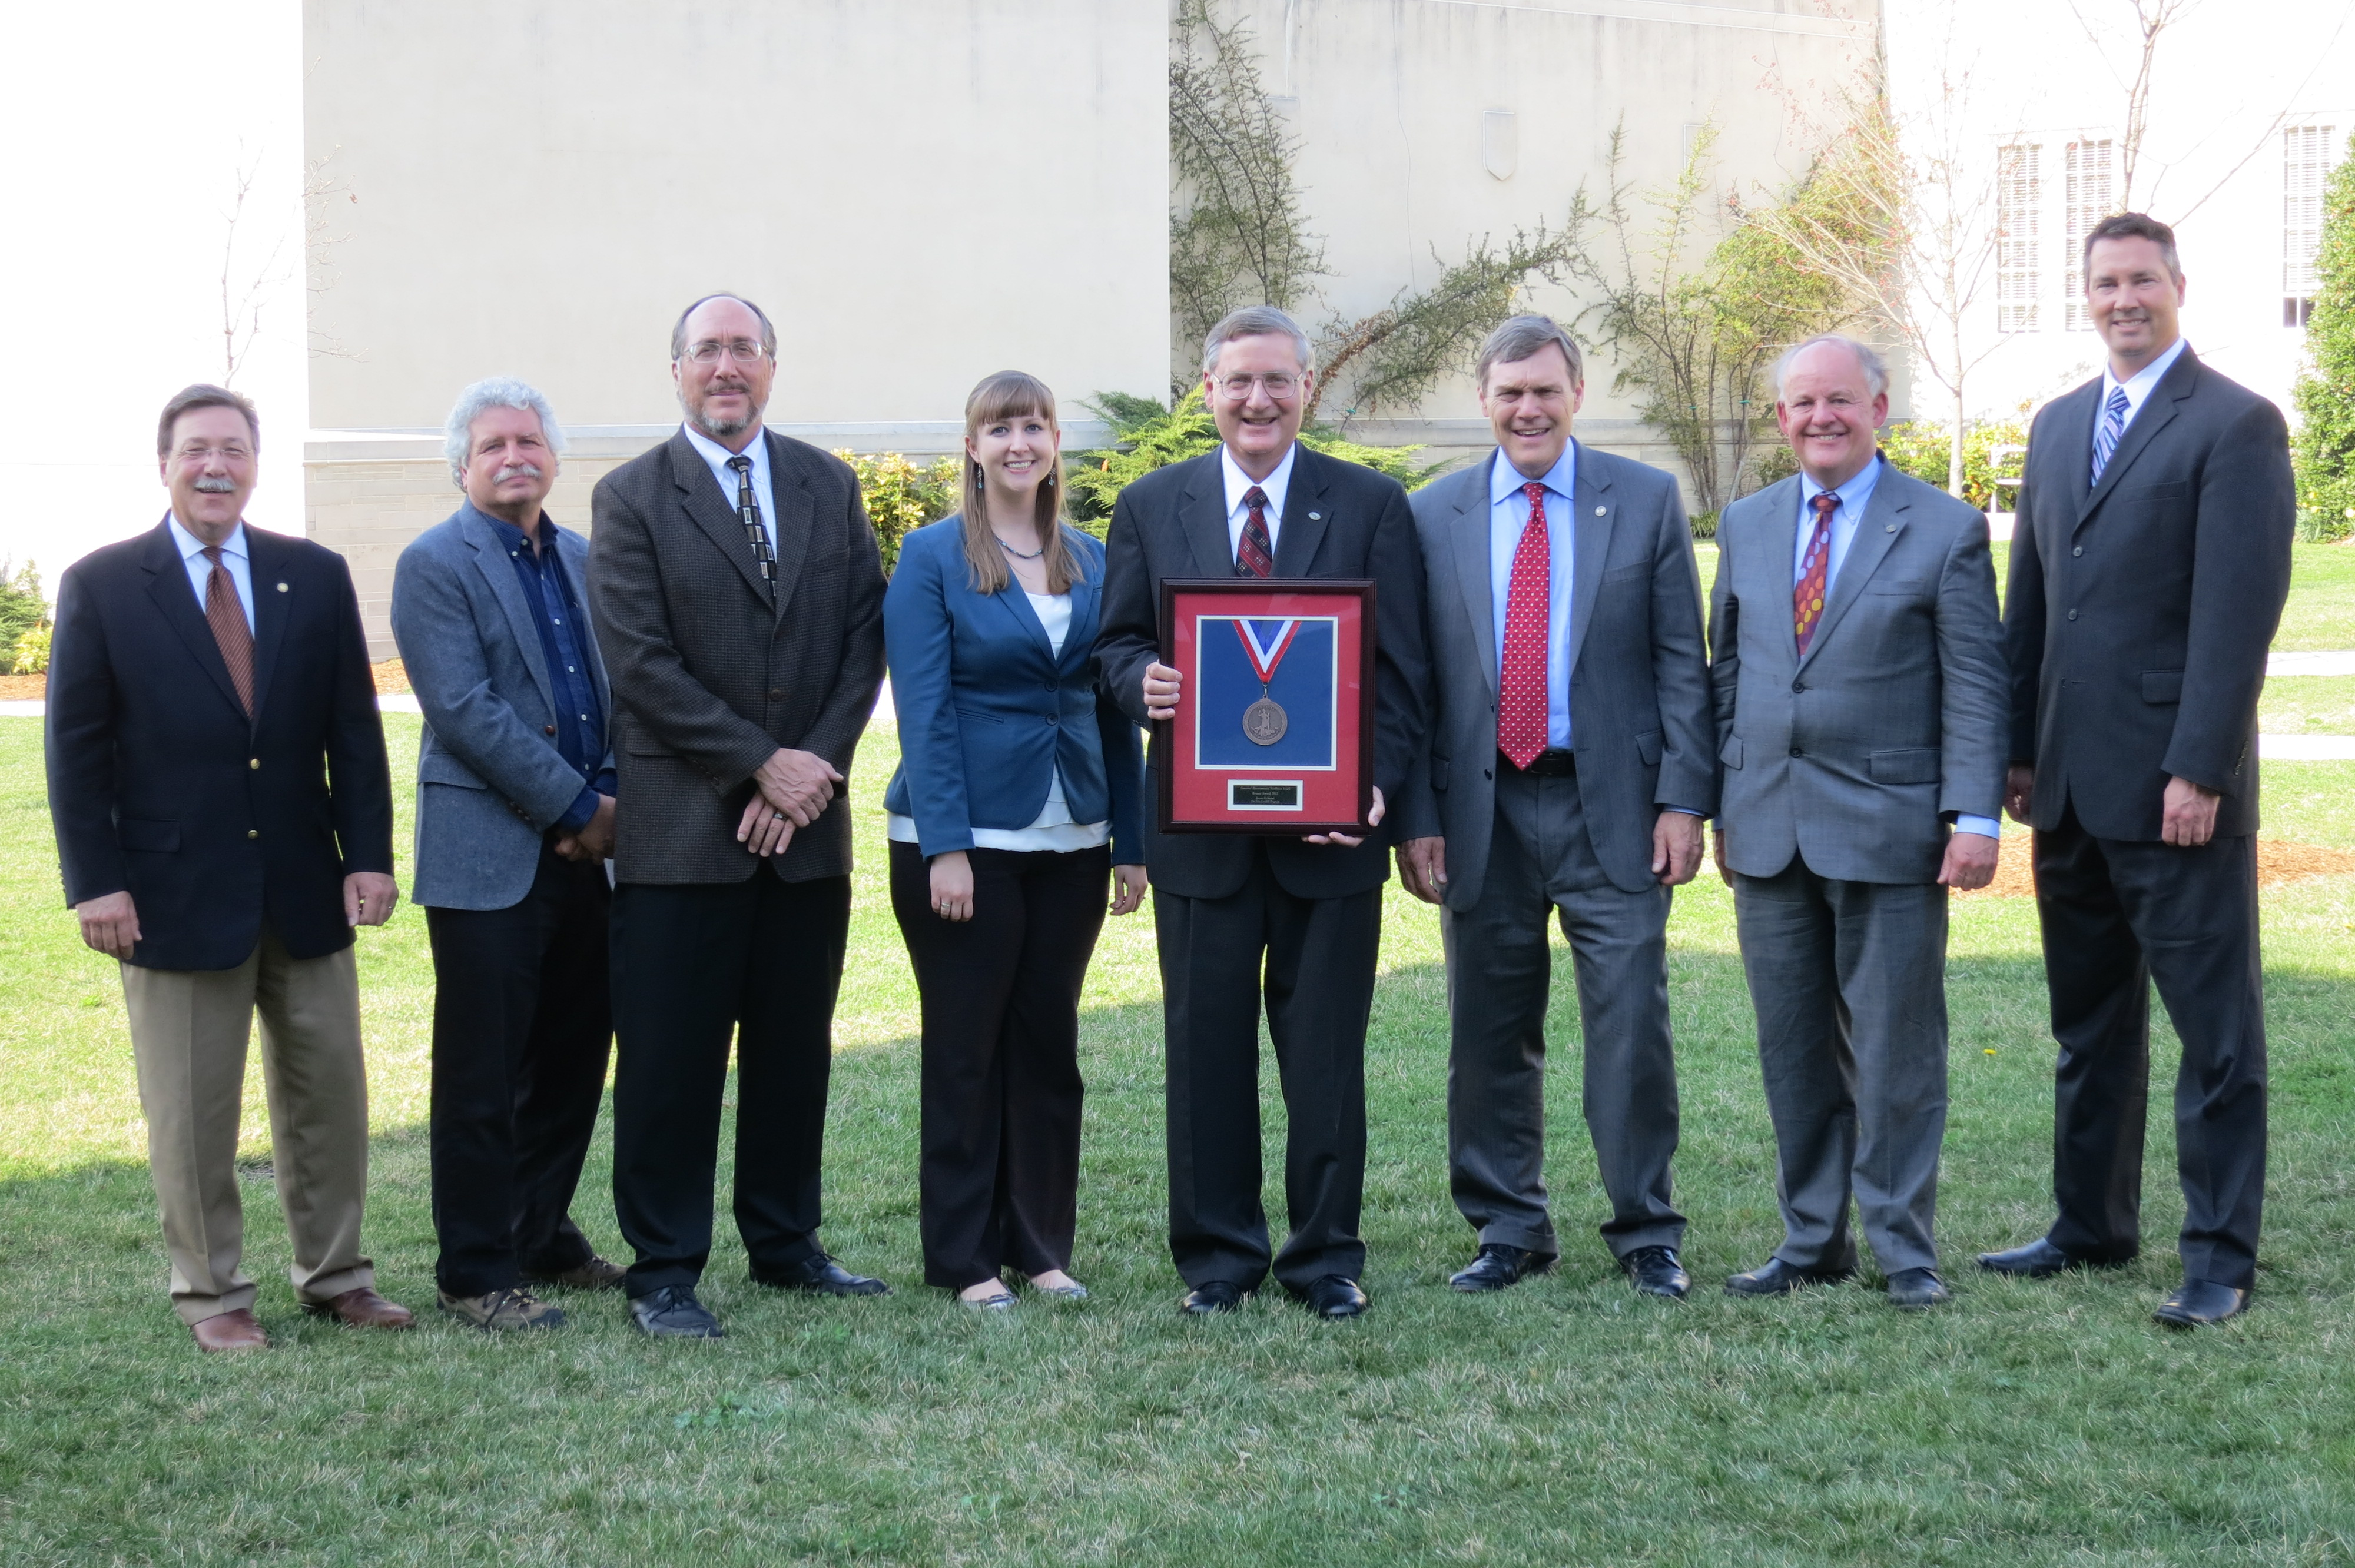 Sustainability program wins Governor's Environmental Excellence Award